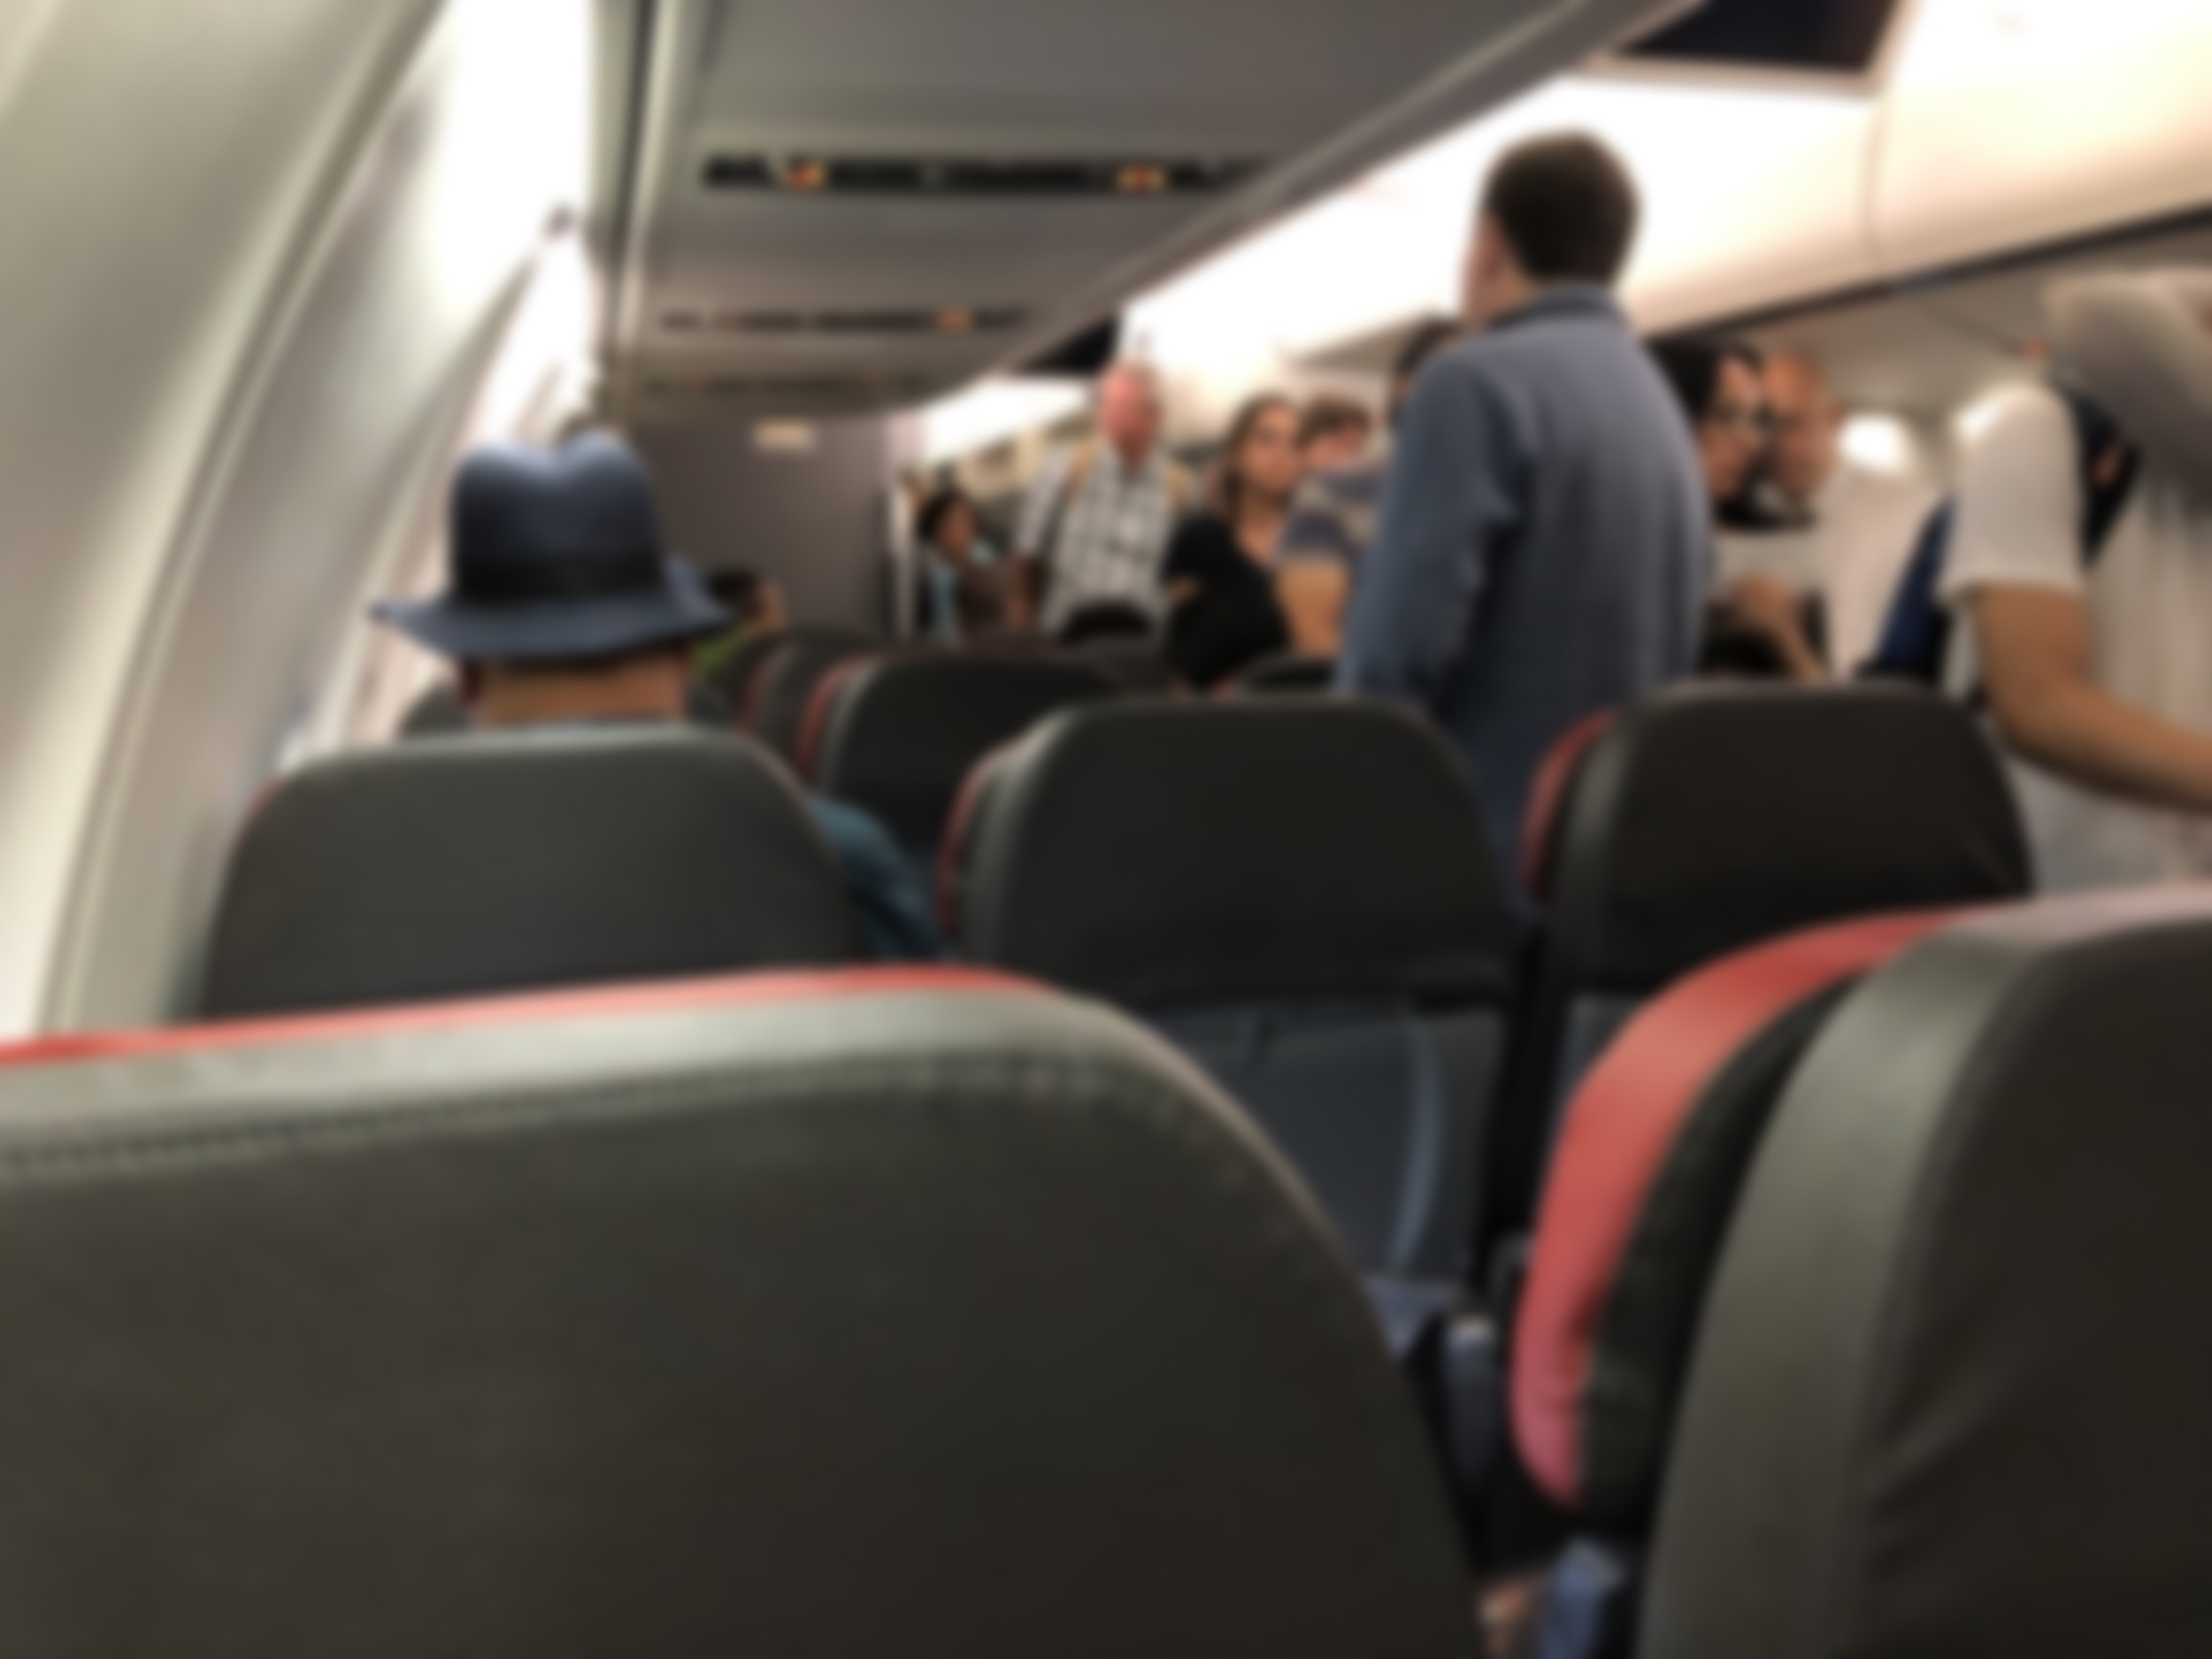 Passengers board delayed American Airlines flight